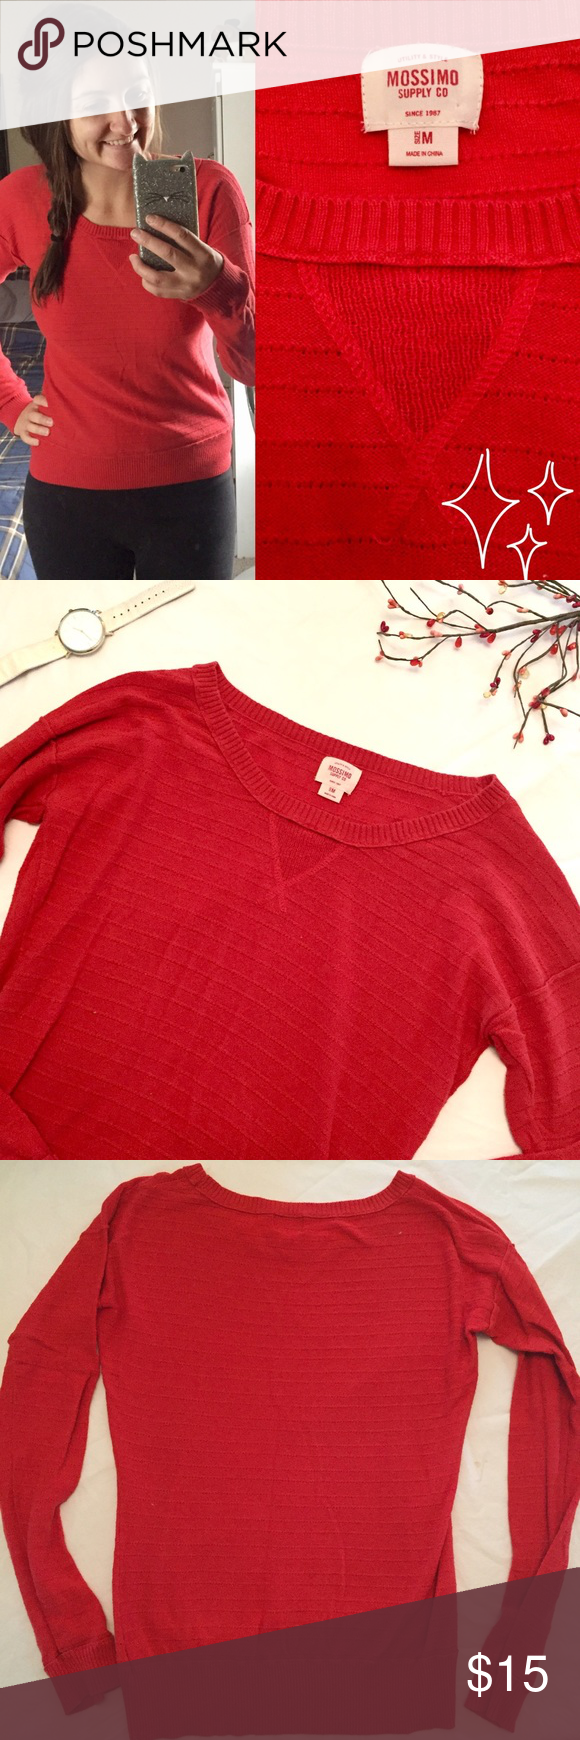 🔰3 for 25 w/ shipping 🔰 Cute 🌱 Thin Red Sweater | Red sweaters